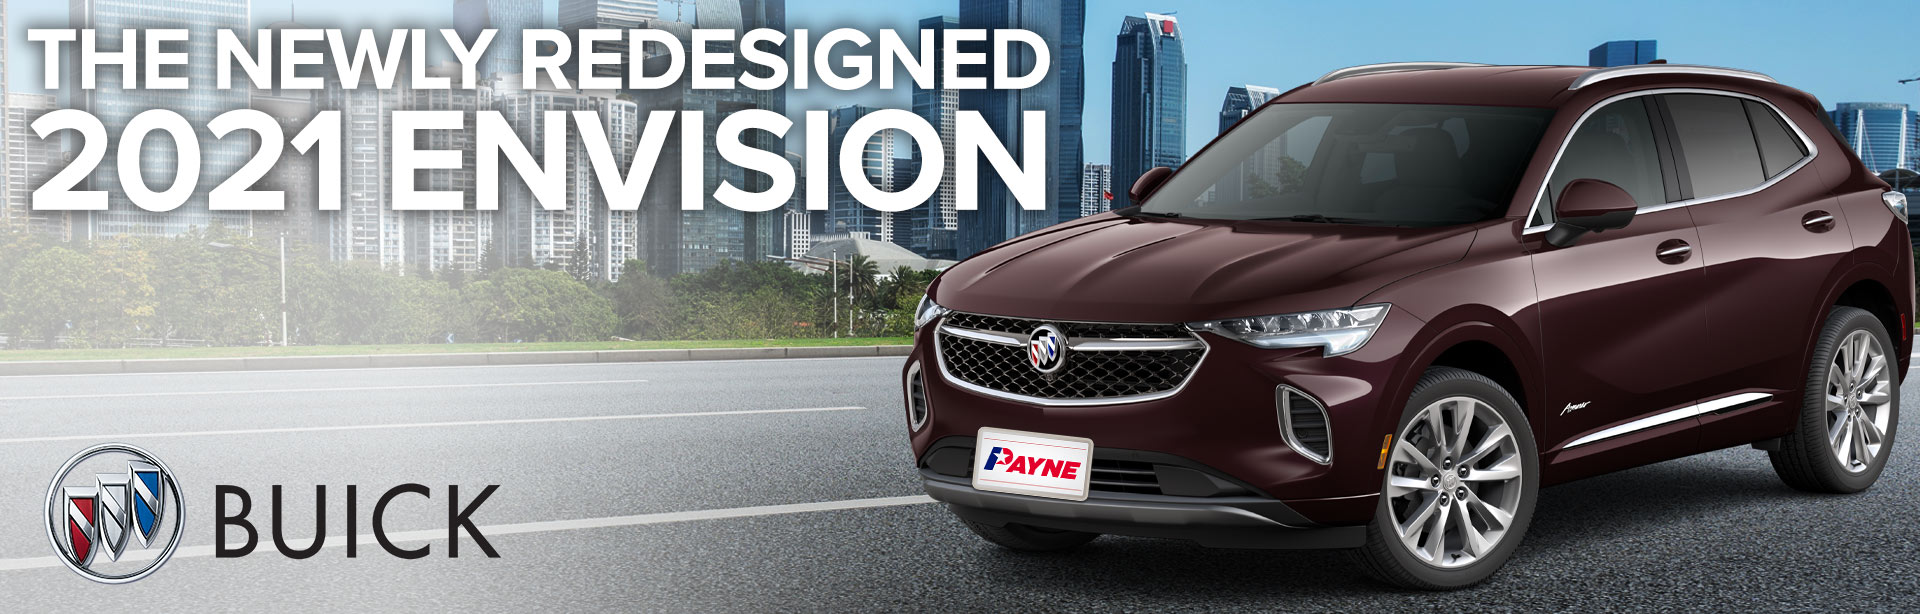 2021 Redesigned Envision